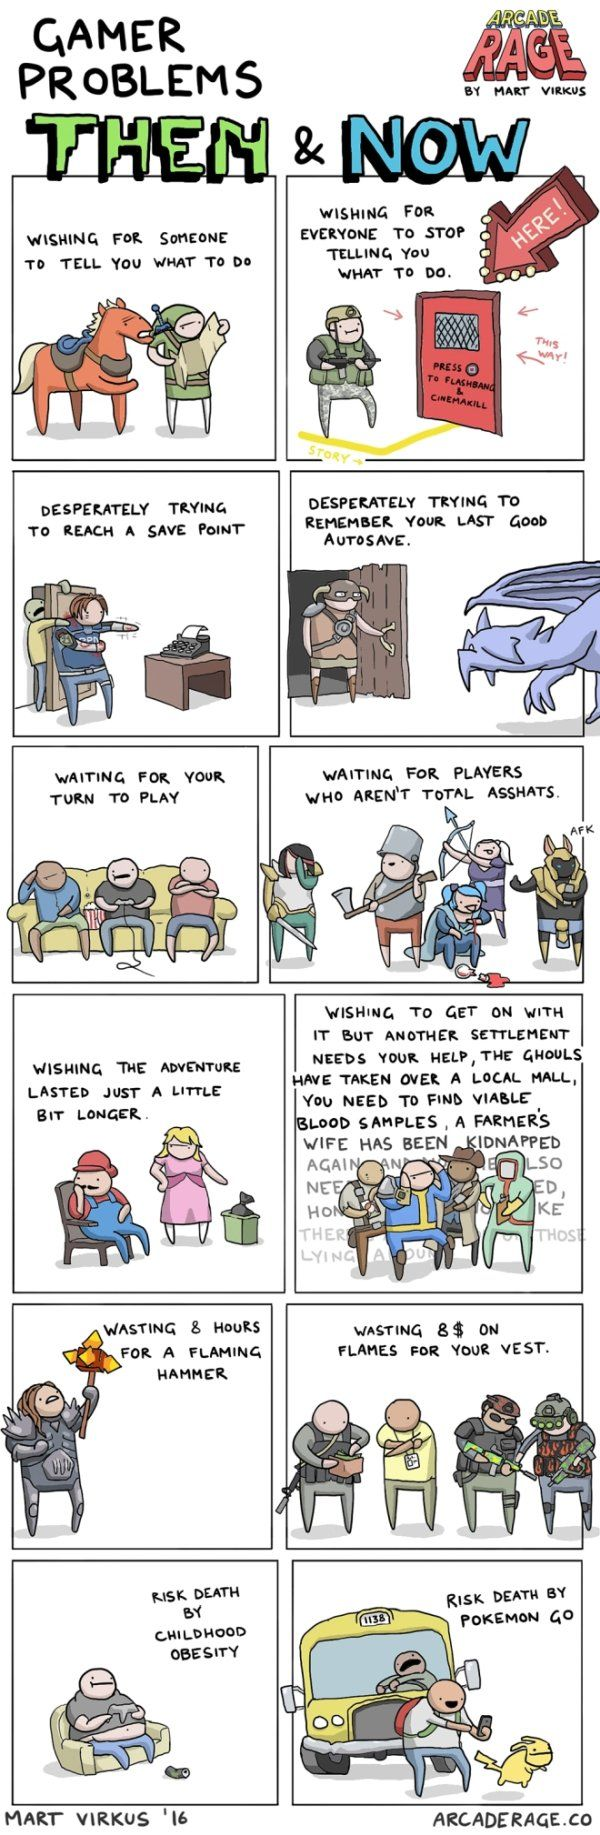 Gamer Problems Then Vs Now Comic Funny Games Video Games Funny Video Game Memes